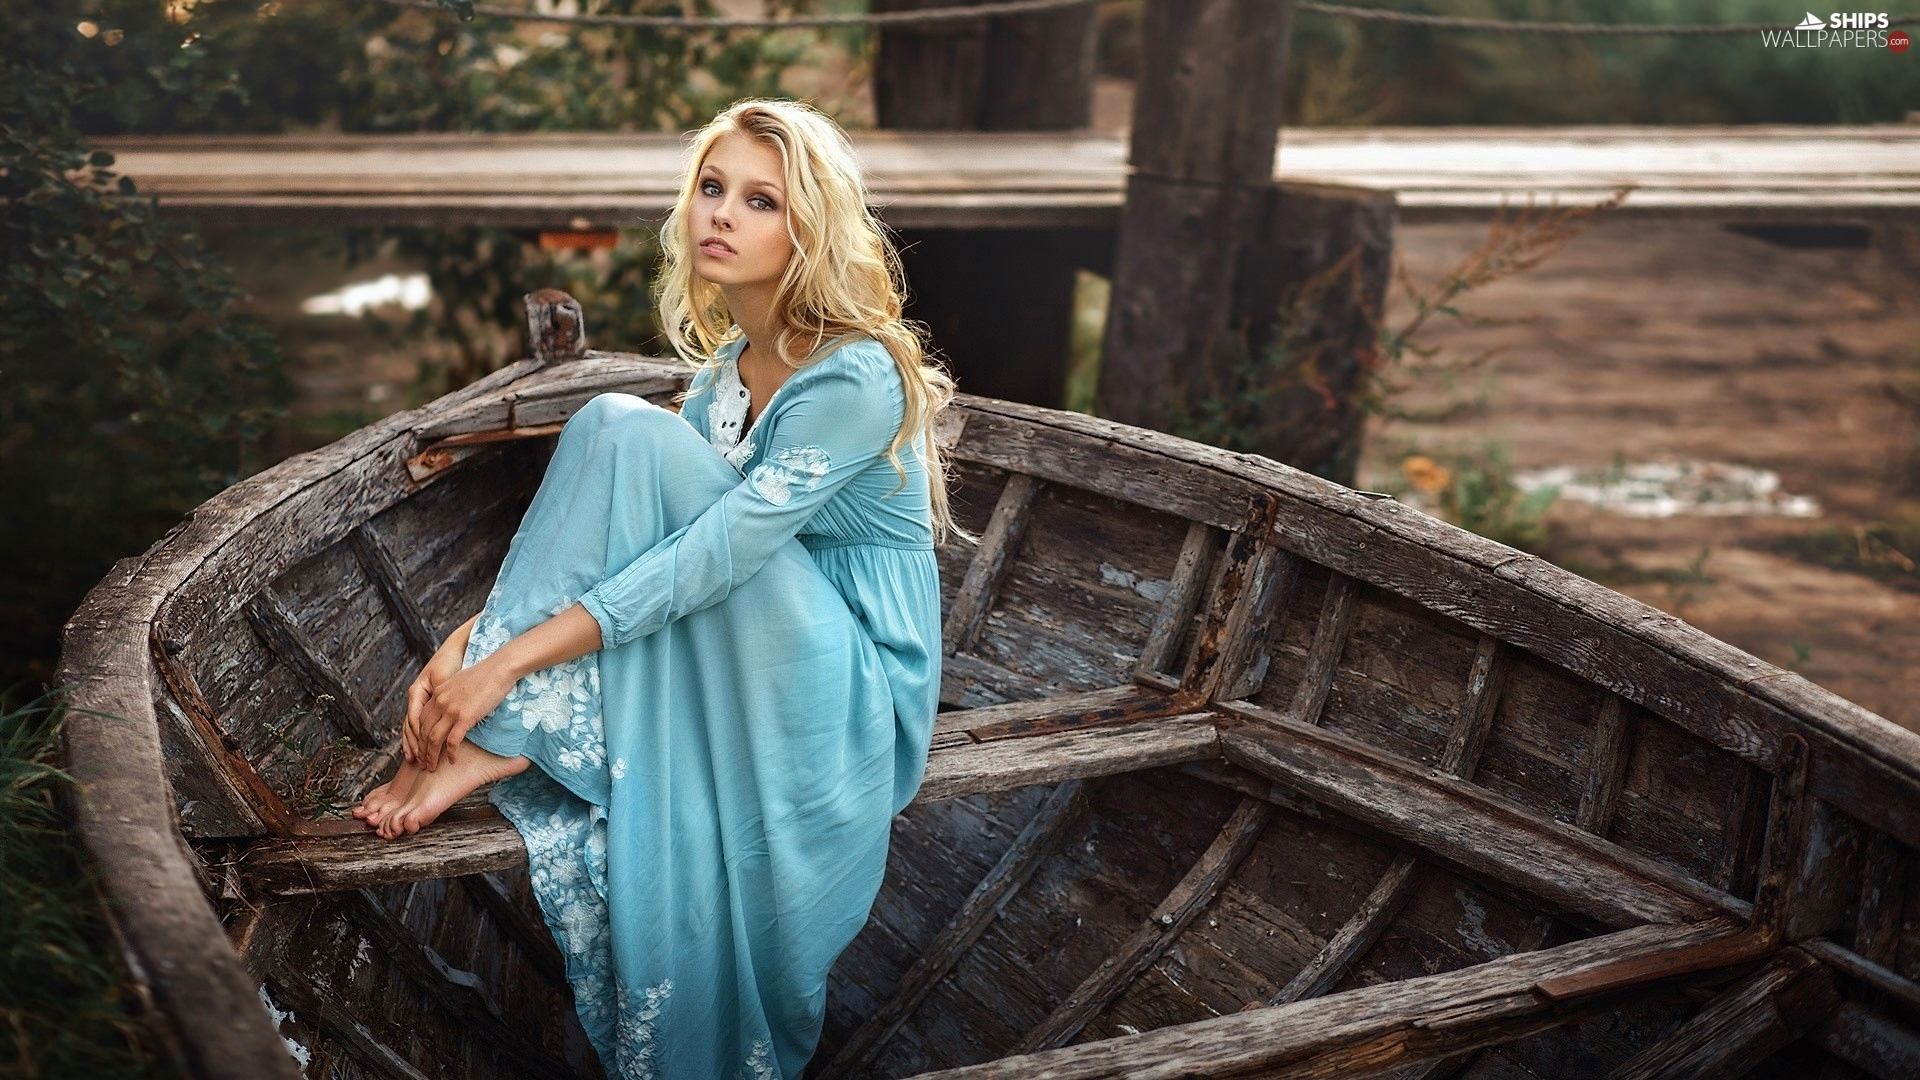 Women, Blonde, Boat, Alice Tarasenko